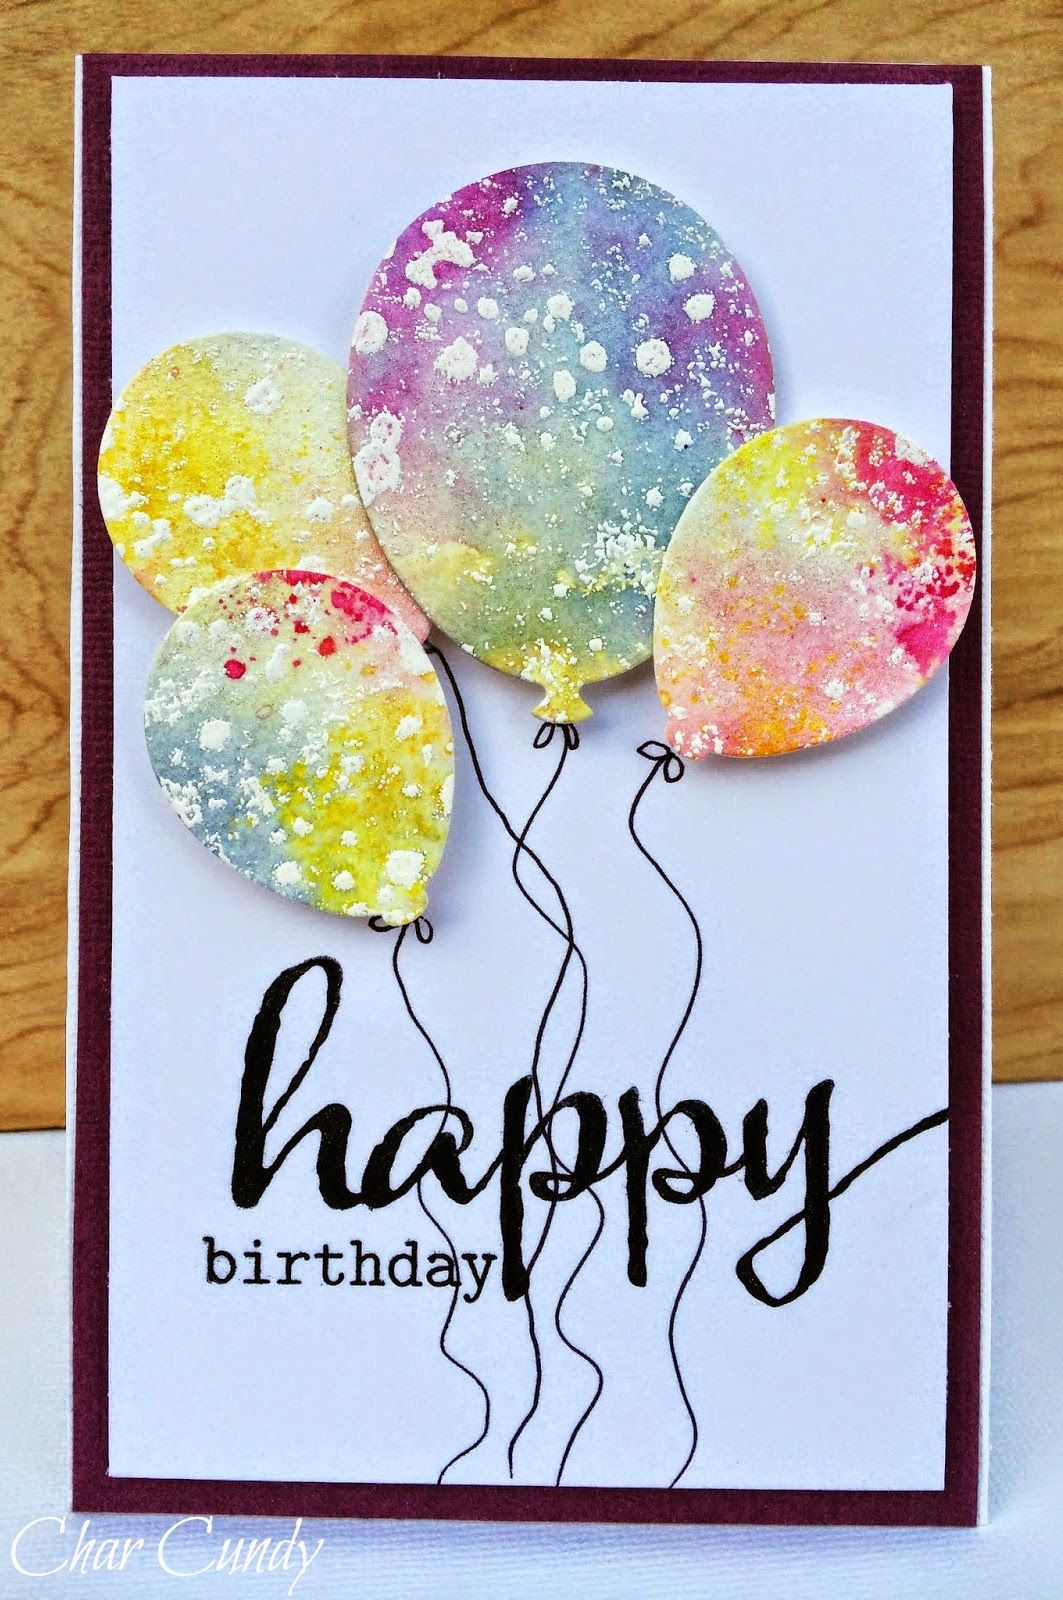 Handmade birthday card from expressions of me a little handmade birthday card from expressions of me a little watercoloring delightful puncheddie cut balloons from fanciful watercolored paper fab card m4hsunfo